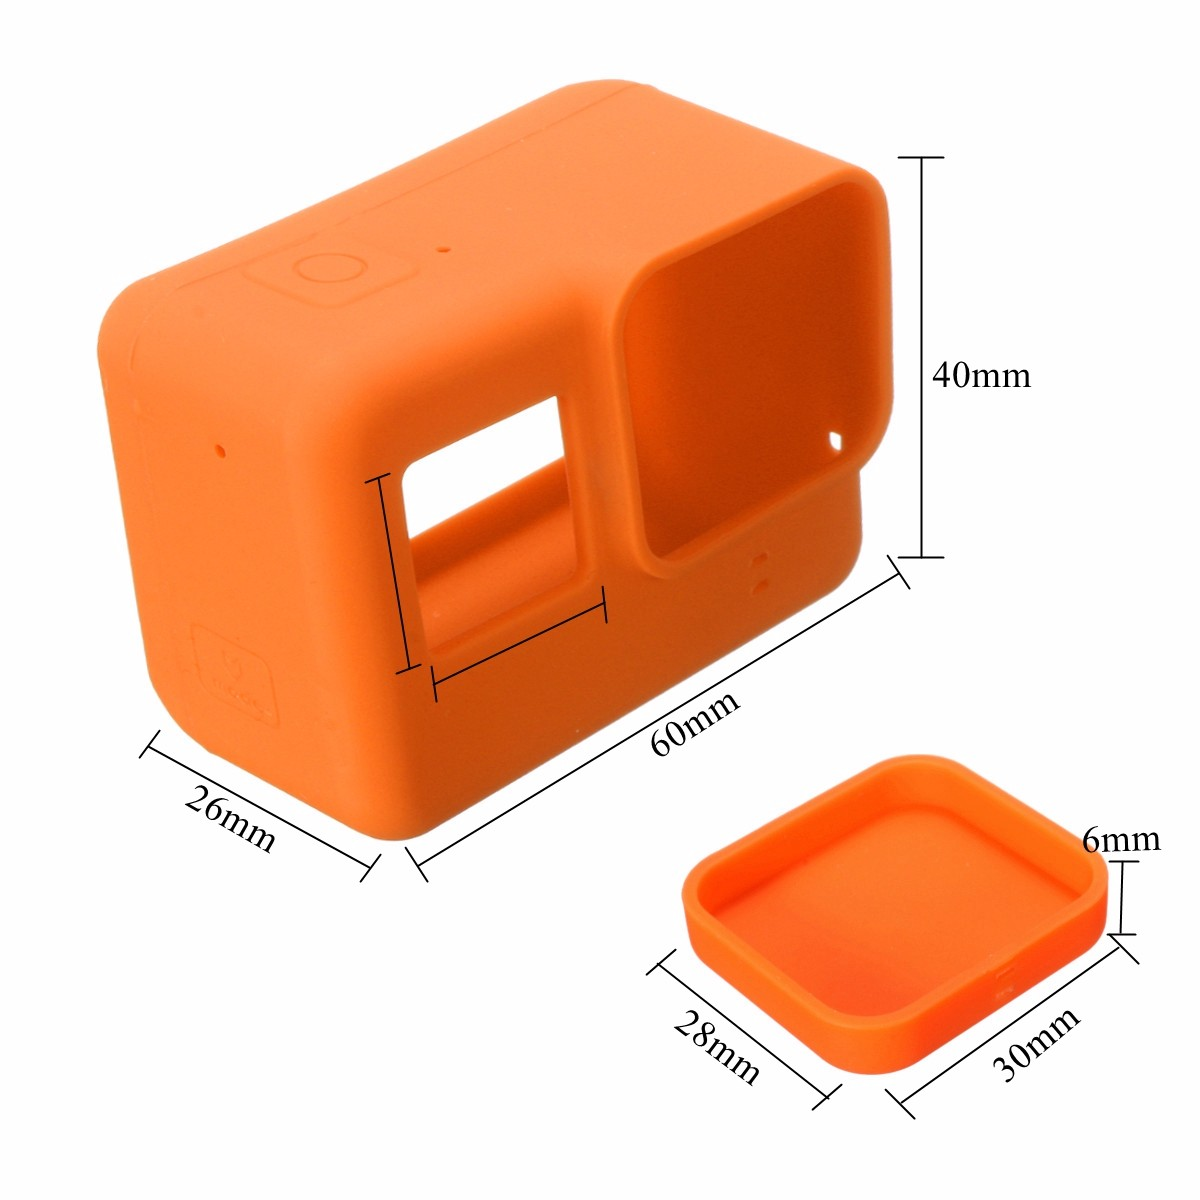 Soft Silicone Housing Case Protective Cover And Lens Cap For GoPro Hero 5 Camera